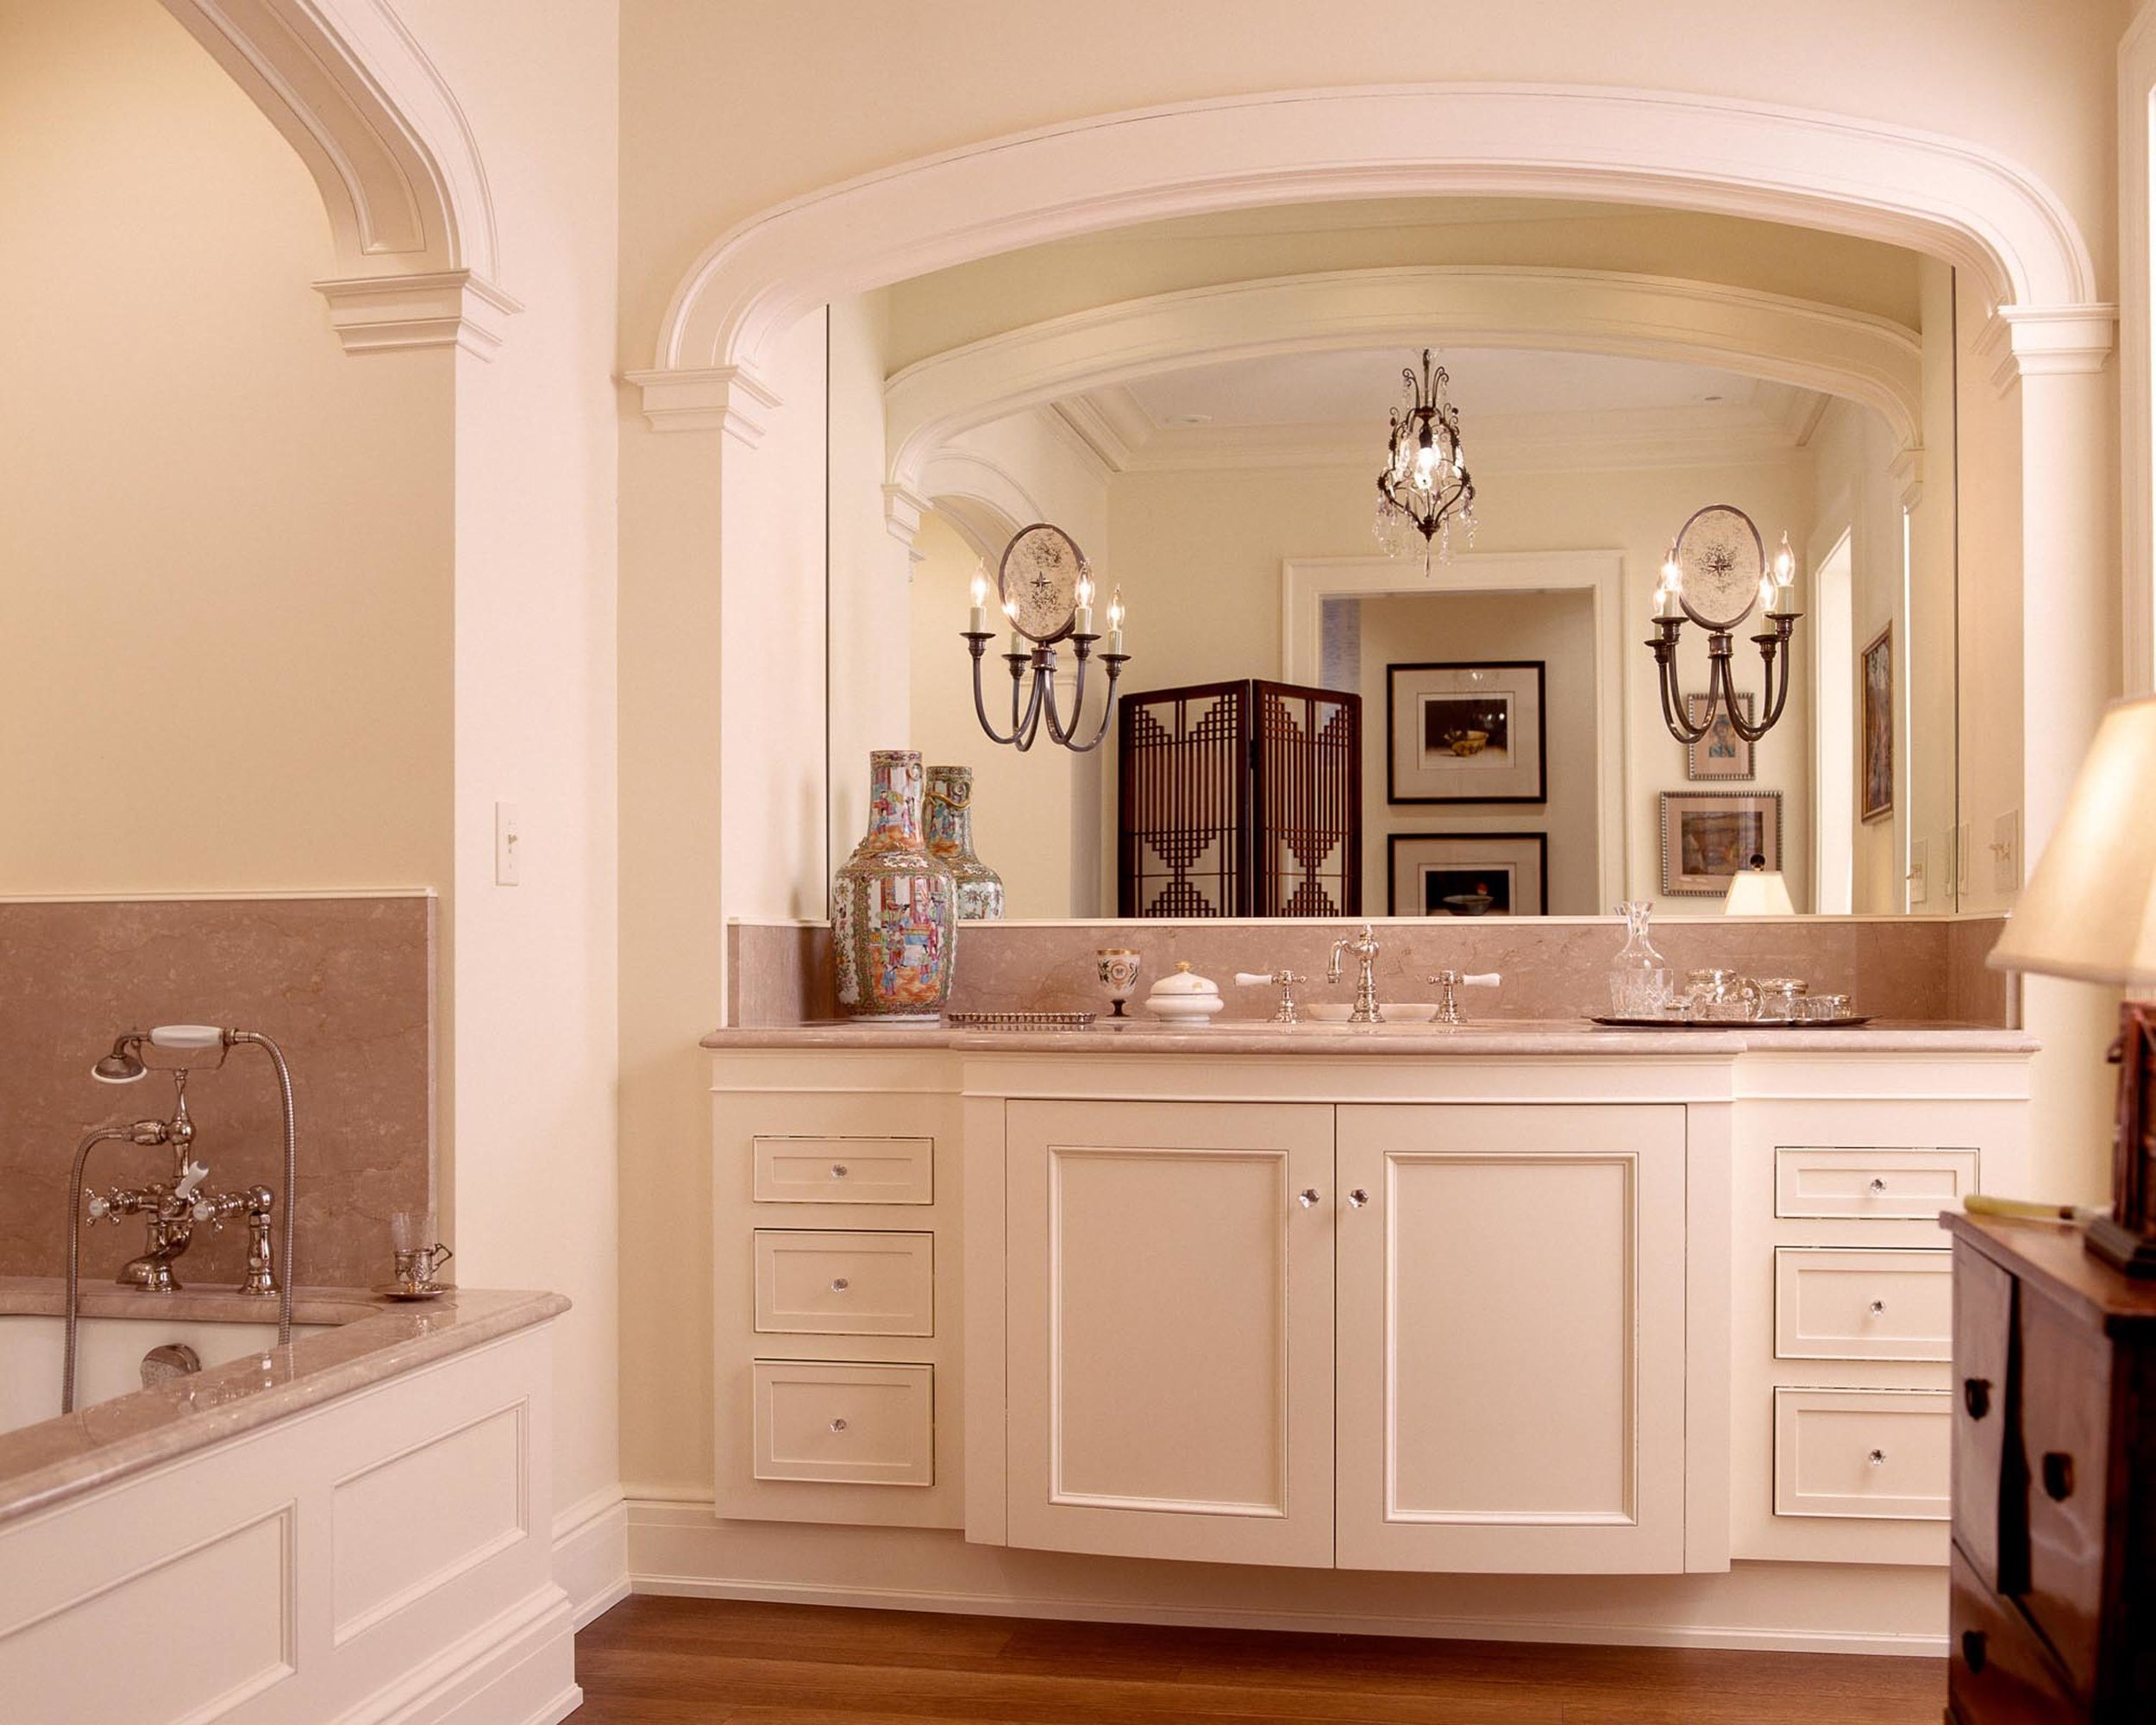 House interior with white walls, white cabinet and large mirror